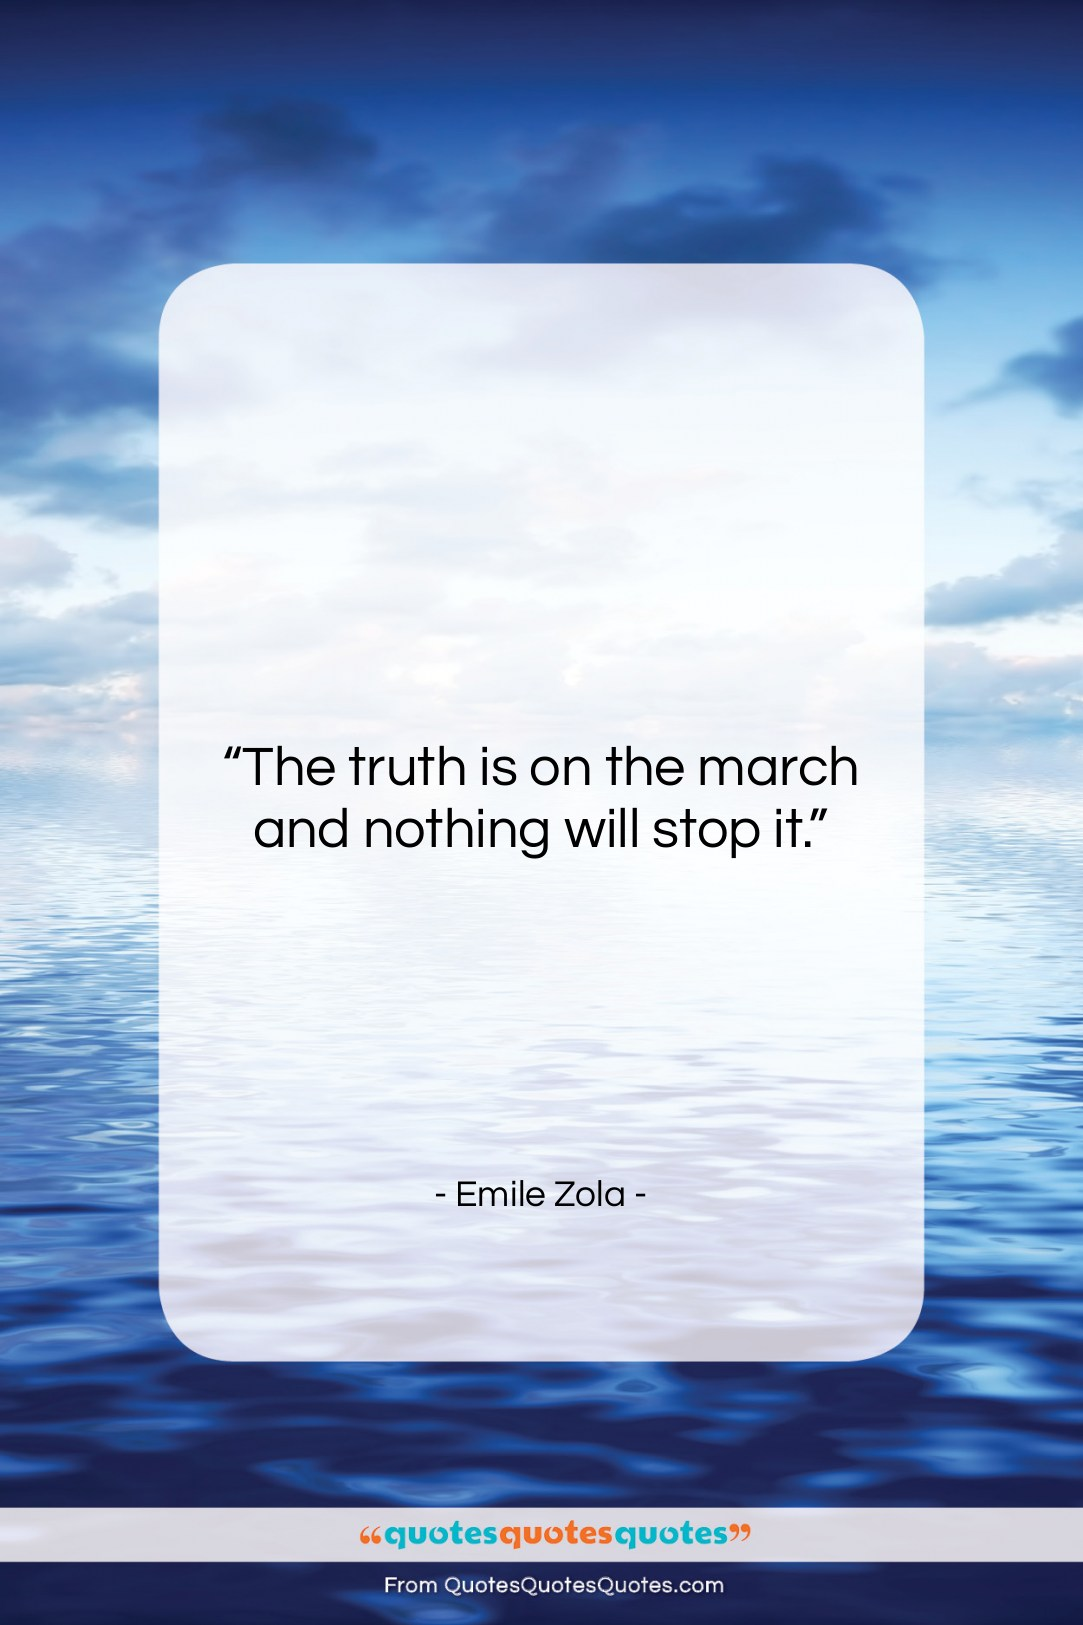 """Emile Zola quote: """"The truth is on the march and…""""- at QuotesQuotesQuotes.com"""